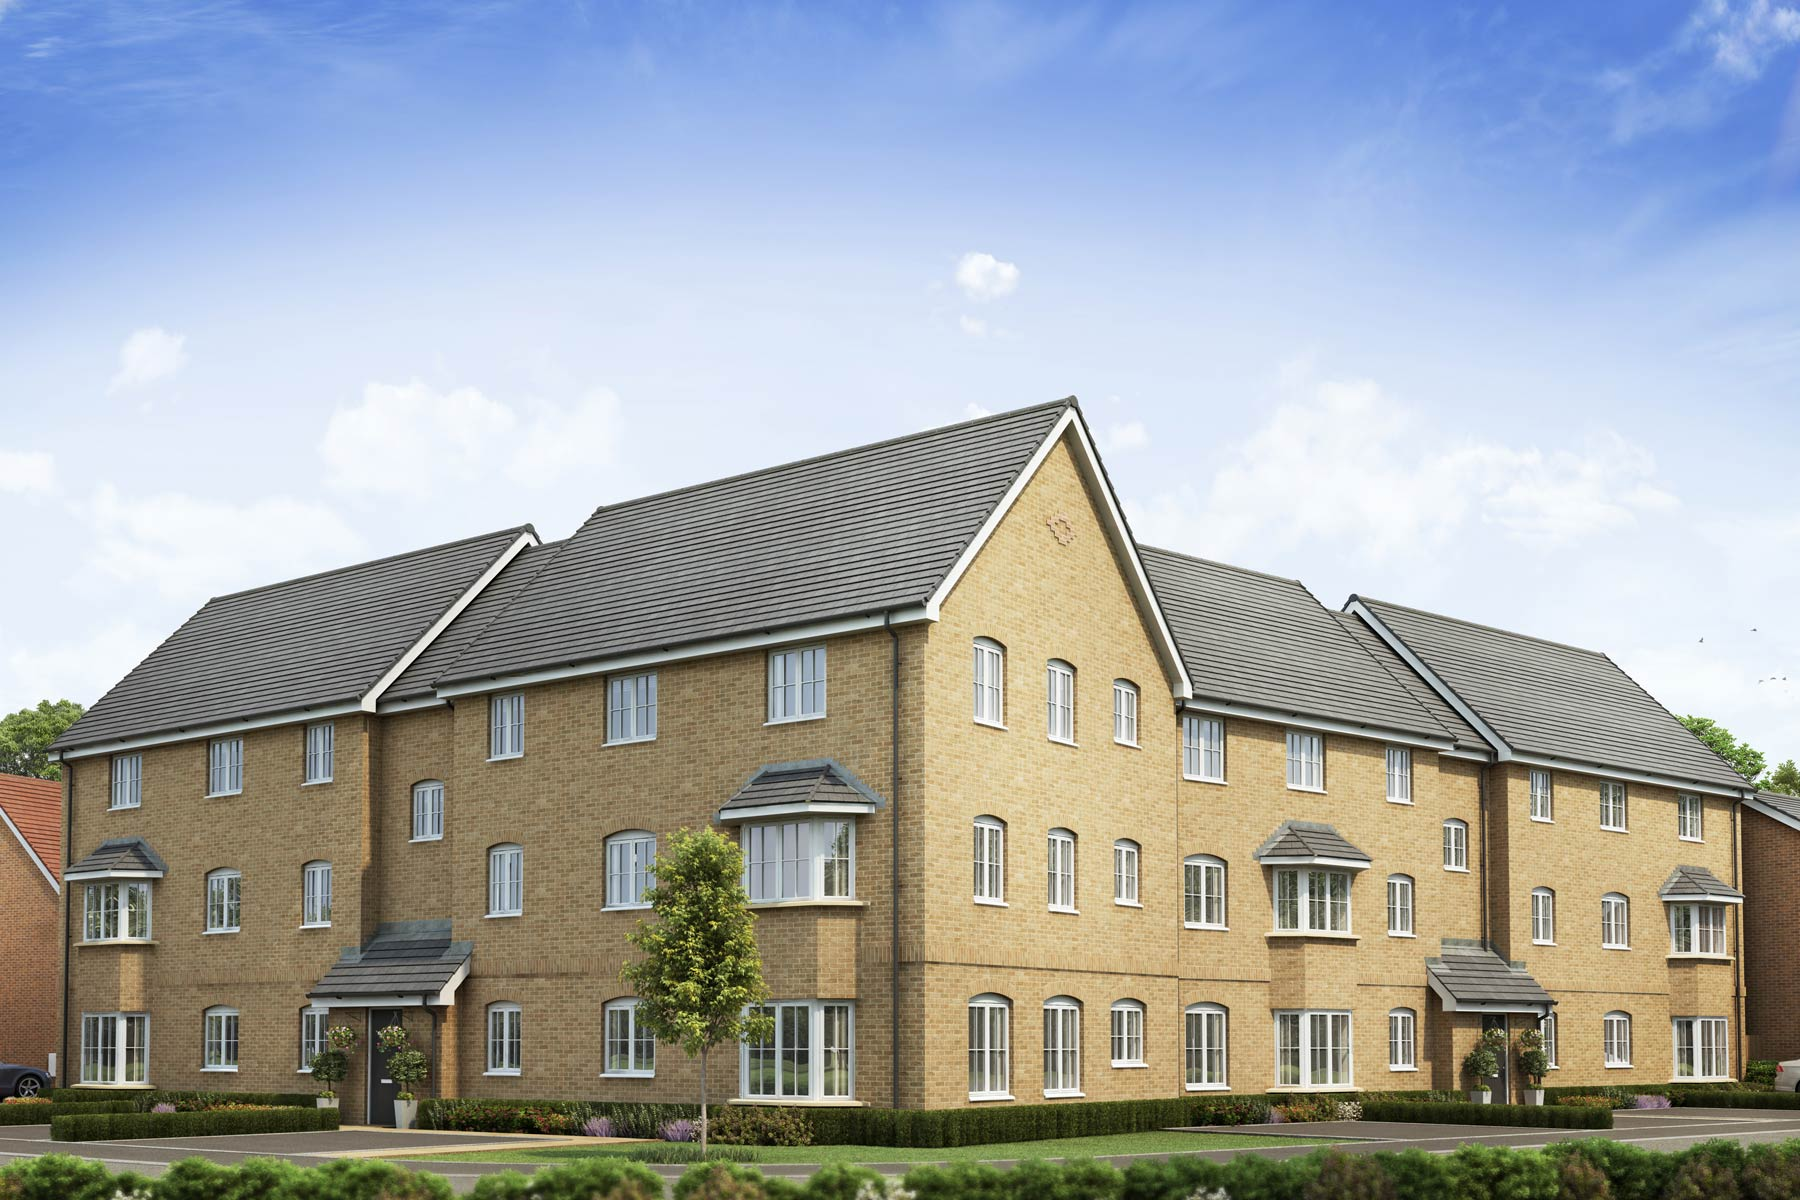 2B-Flats-Steppingley-House-Plots-381-392_Web-Image